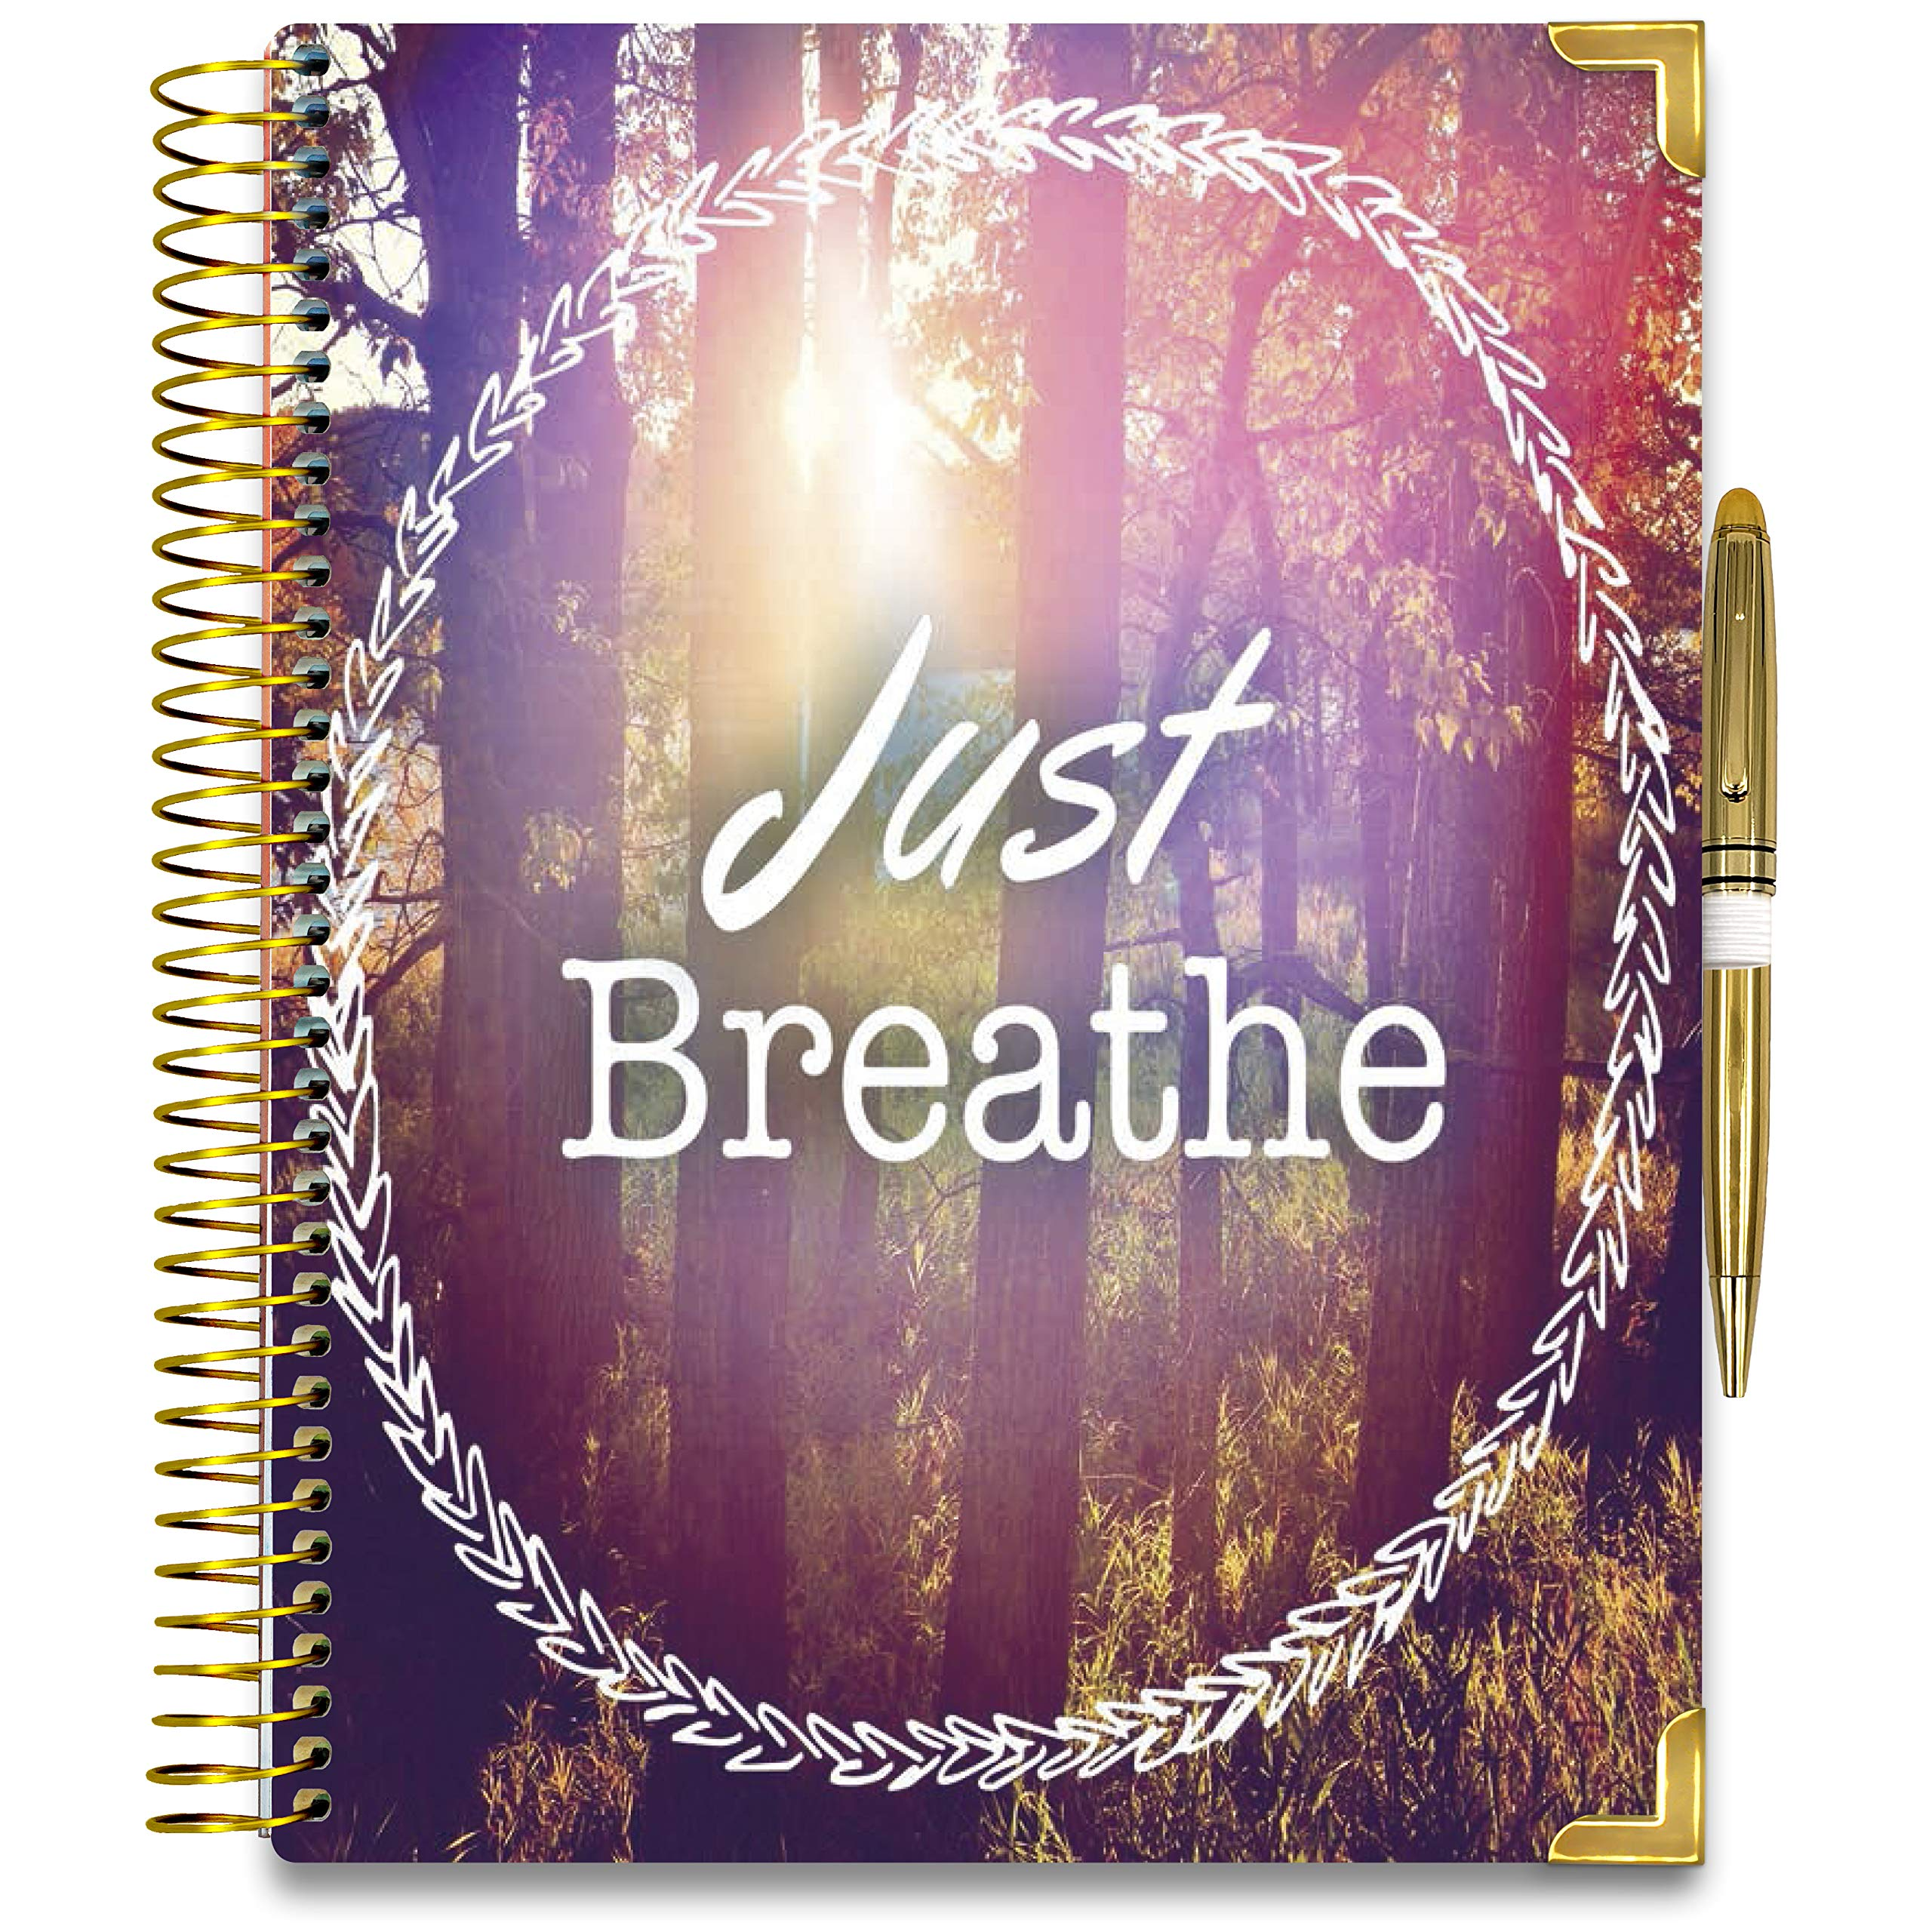 Daily Planner 2019-2020 - Dated Calendar Year   8.5 x 11 - Academic Year - Tools4Wisdom